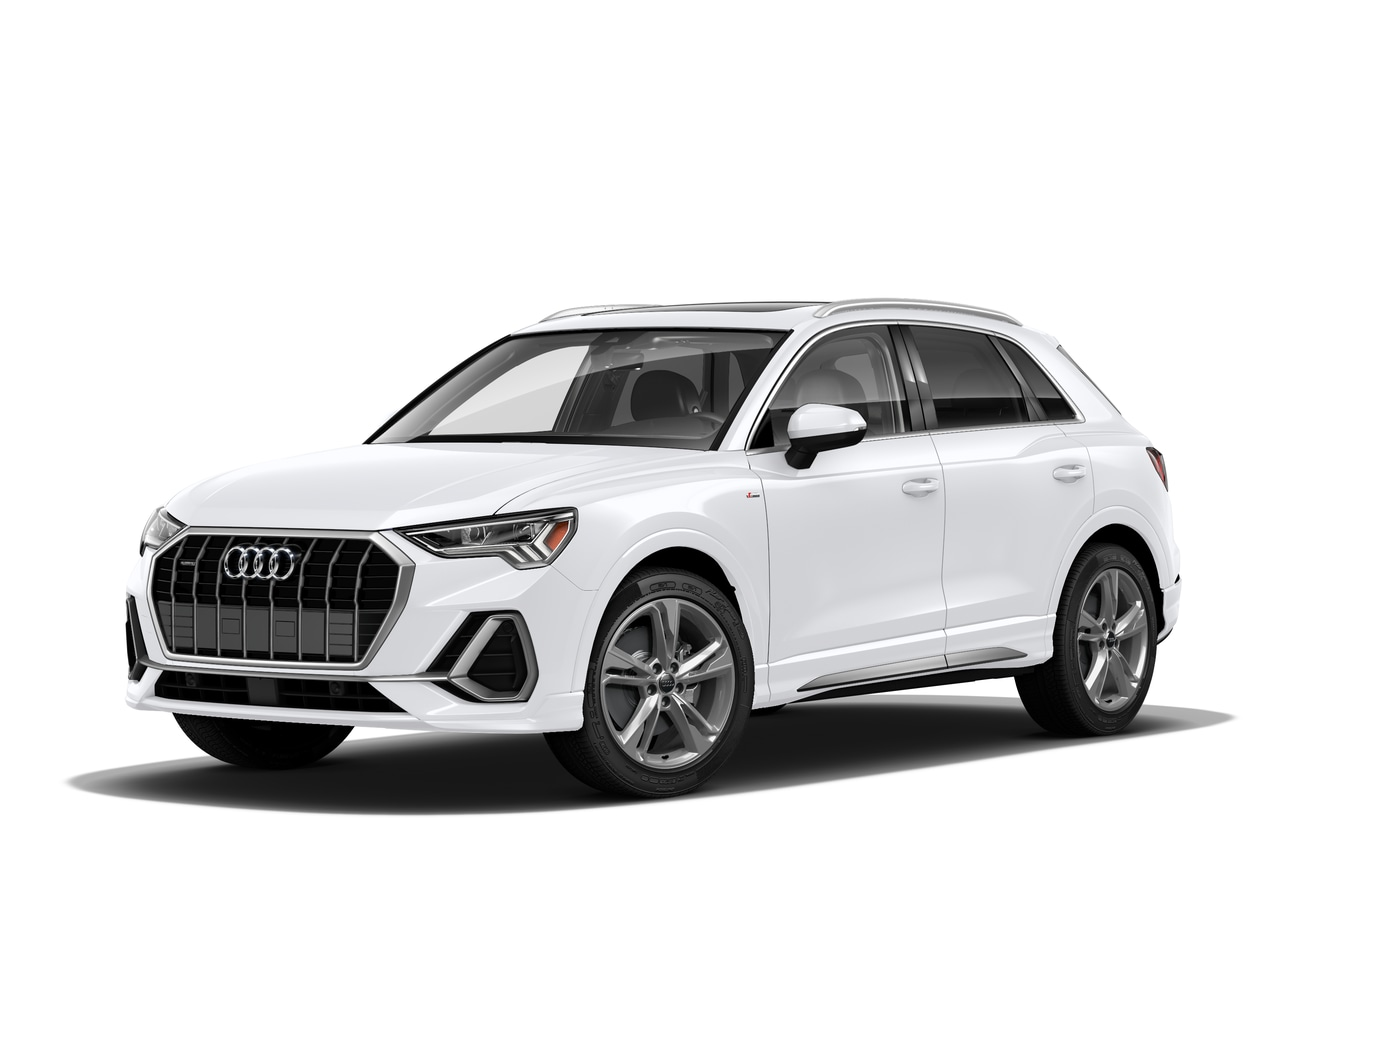 New 2019 Audi Q3 For Sale in Parsippany | VIN: WA1EECF38K1072985